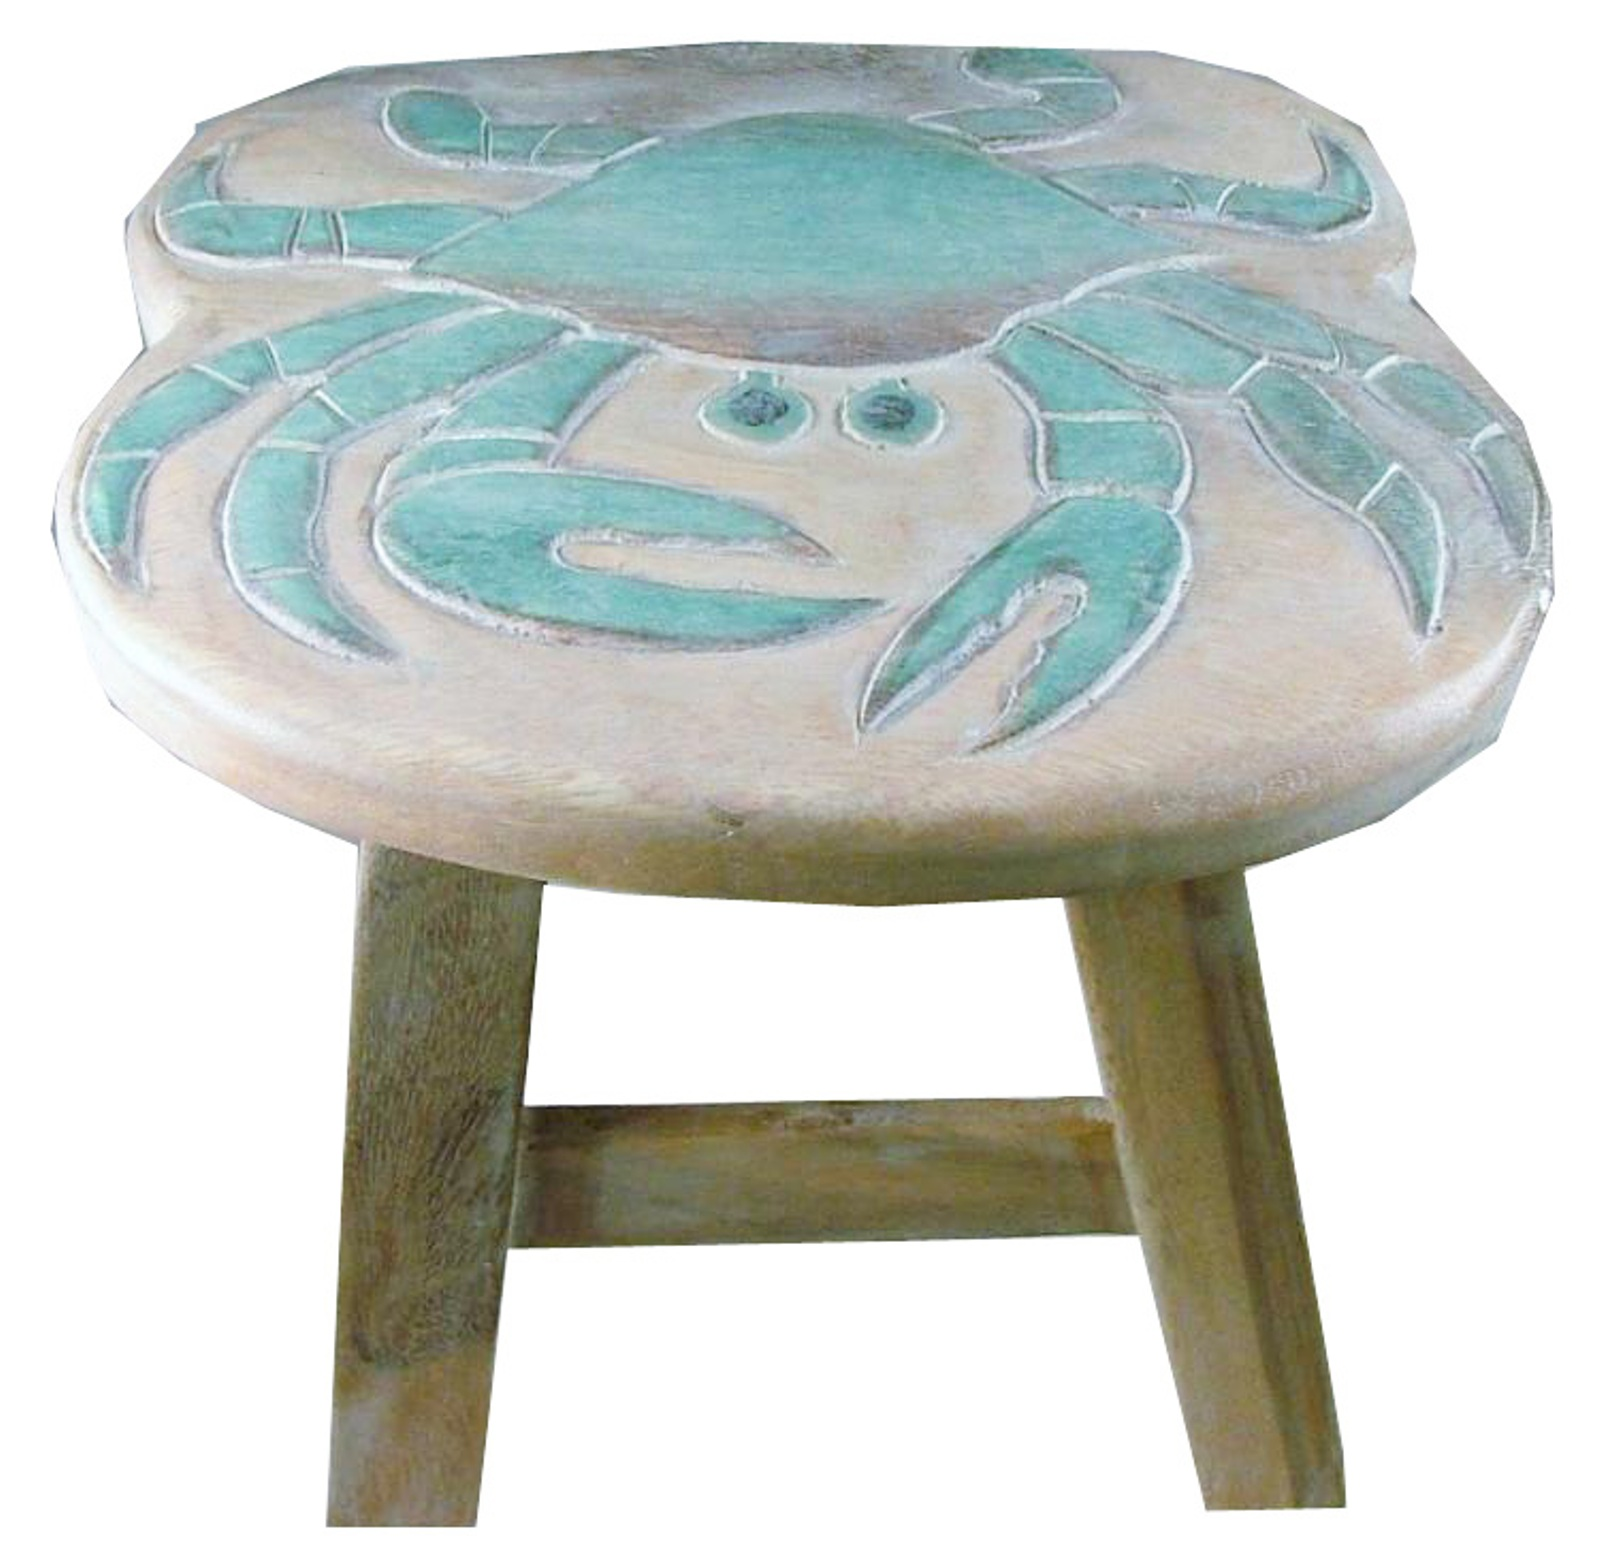 Details about Chesapeake Bay Blue Crab Child Wooden Step Stool